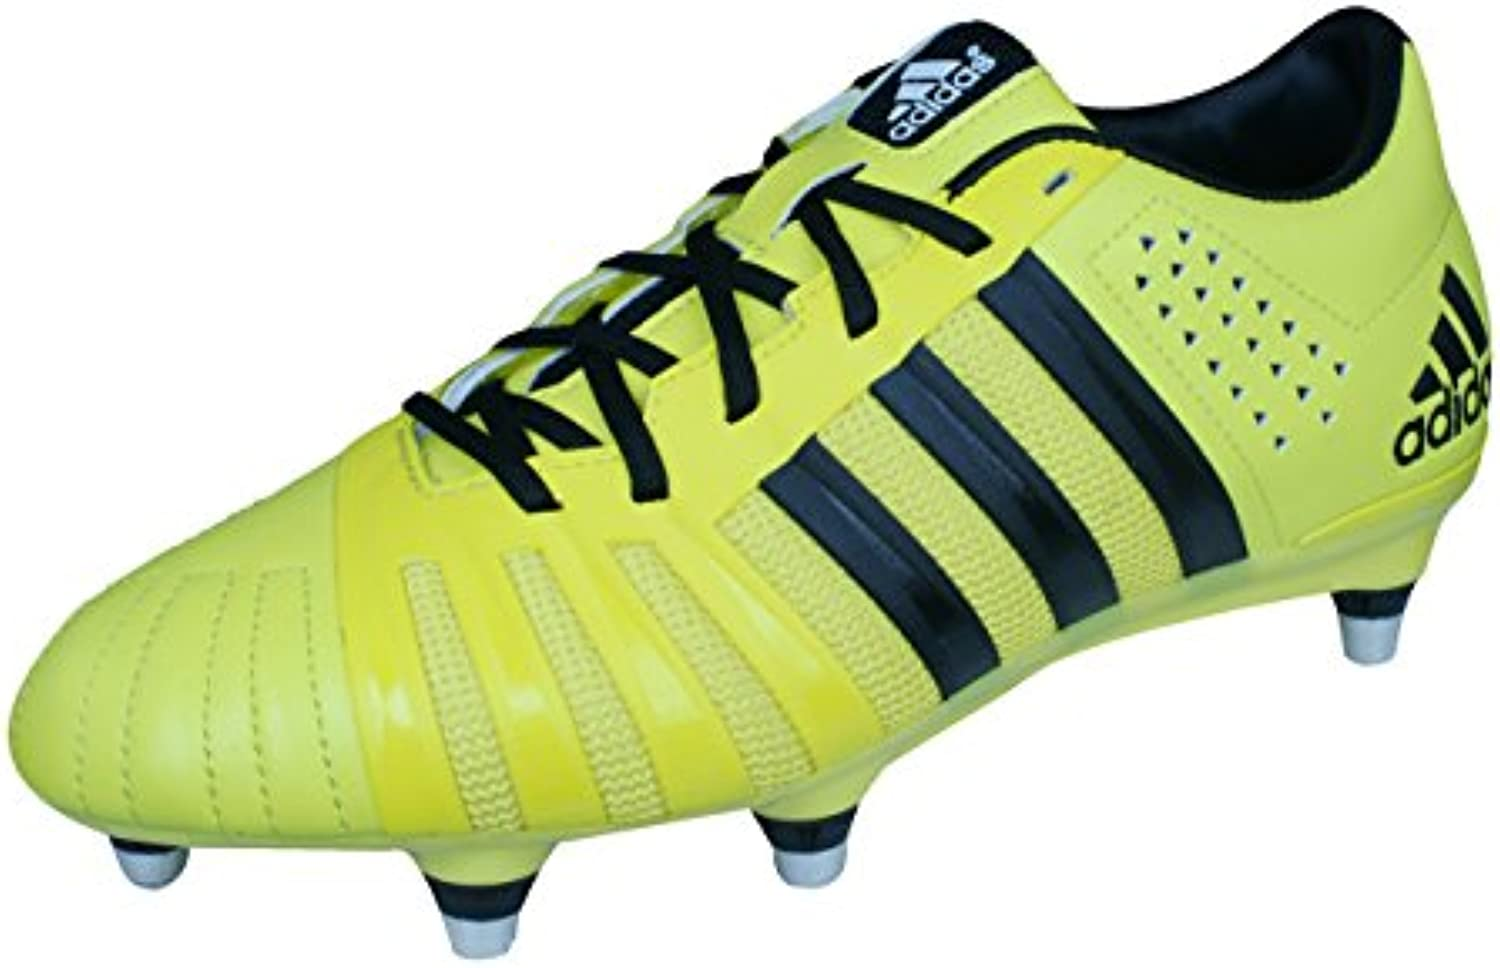 ff80 PRO 2.0 XTRX SG Rugby Boots   Yellow